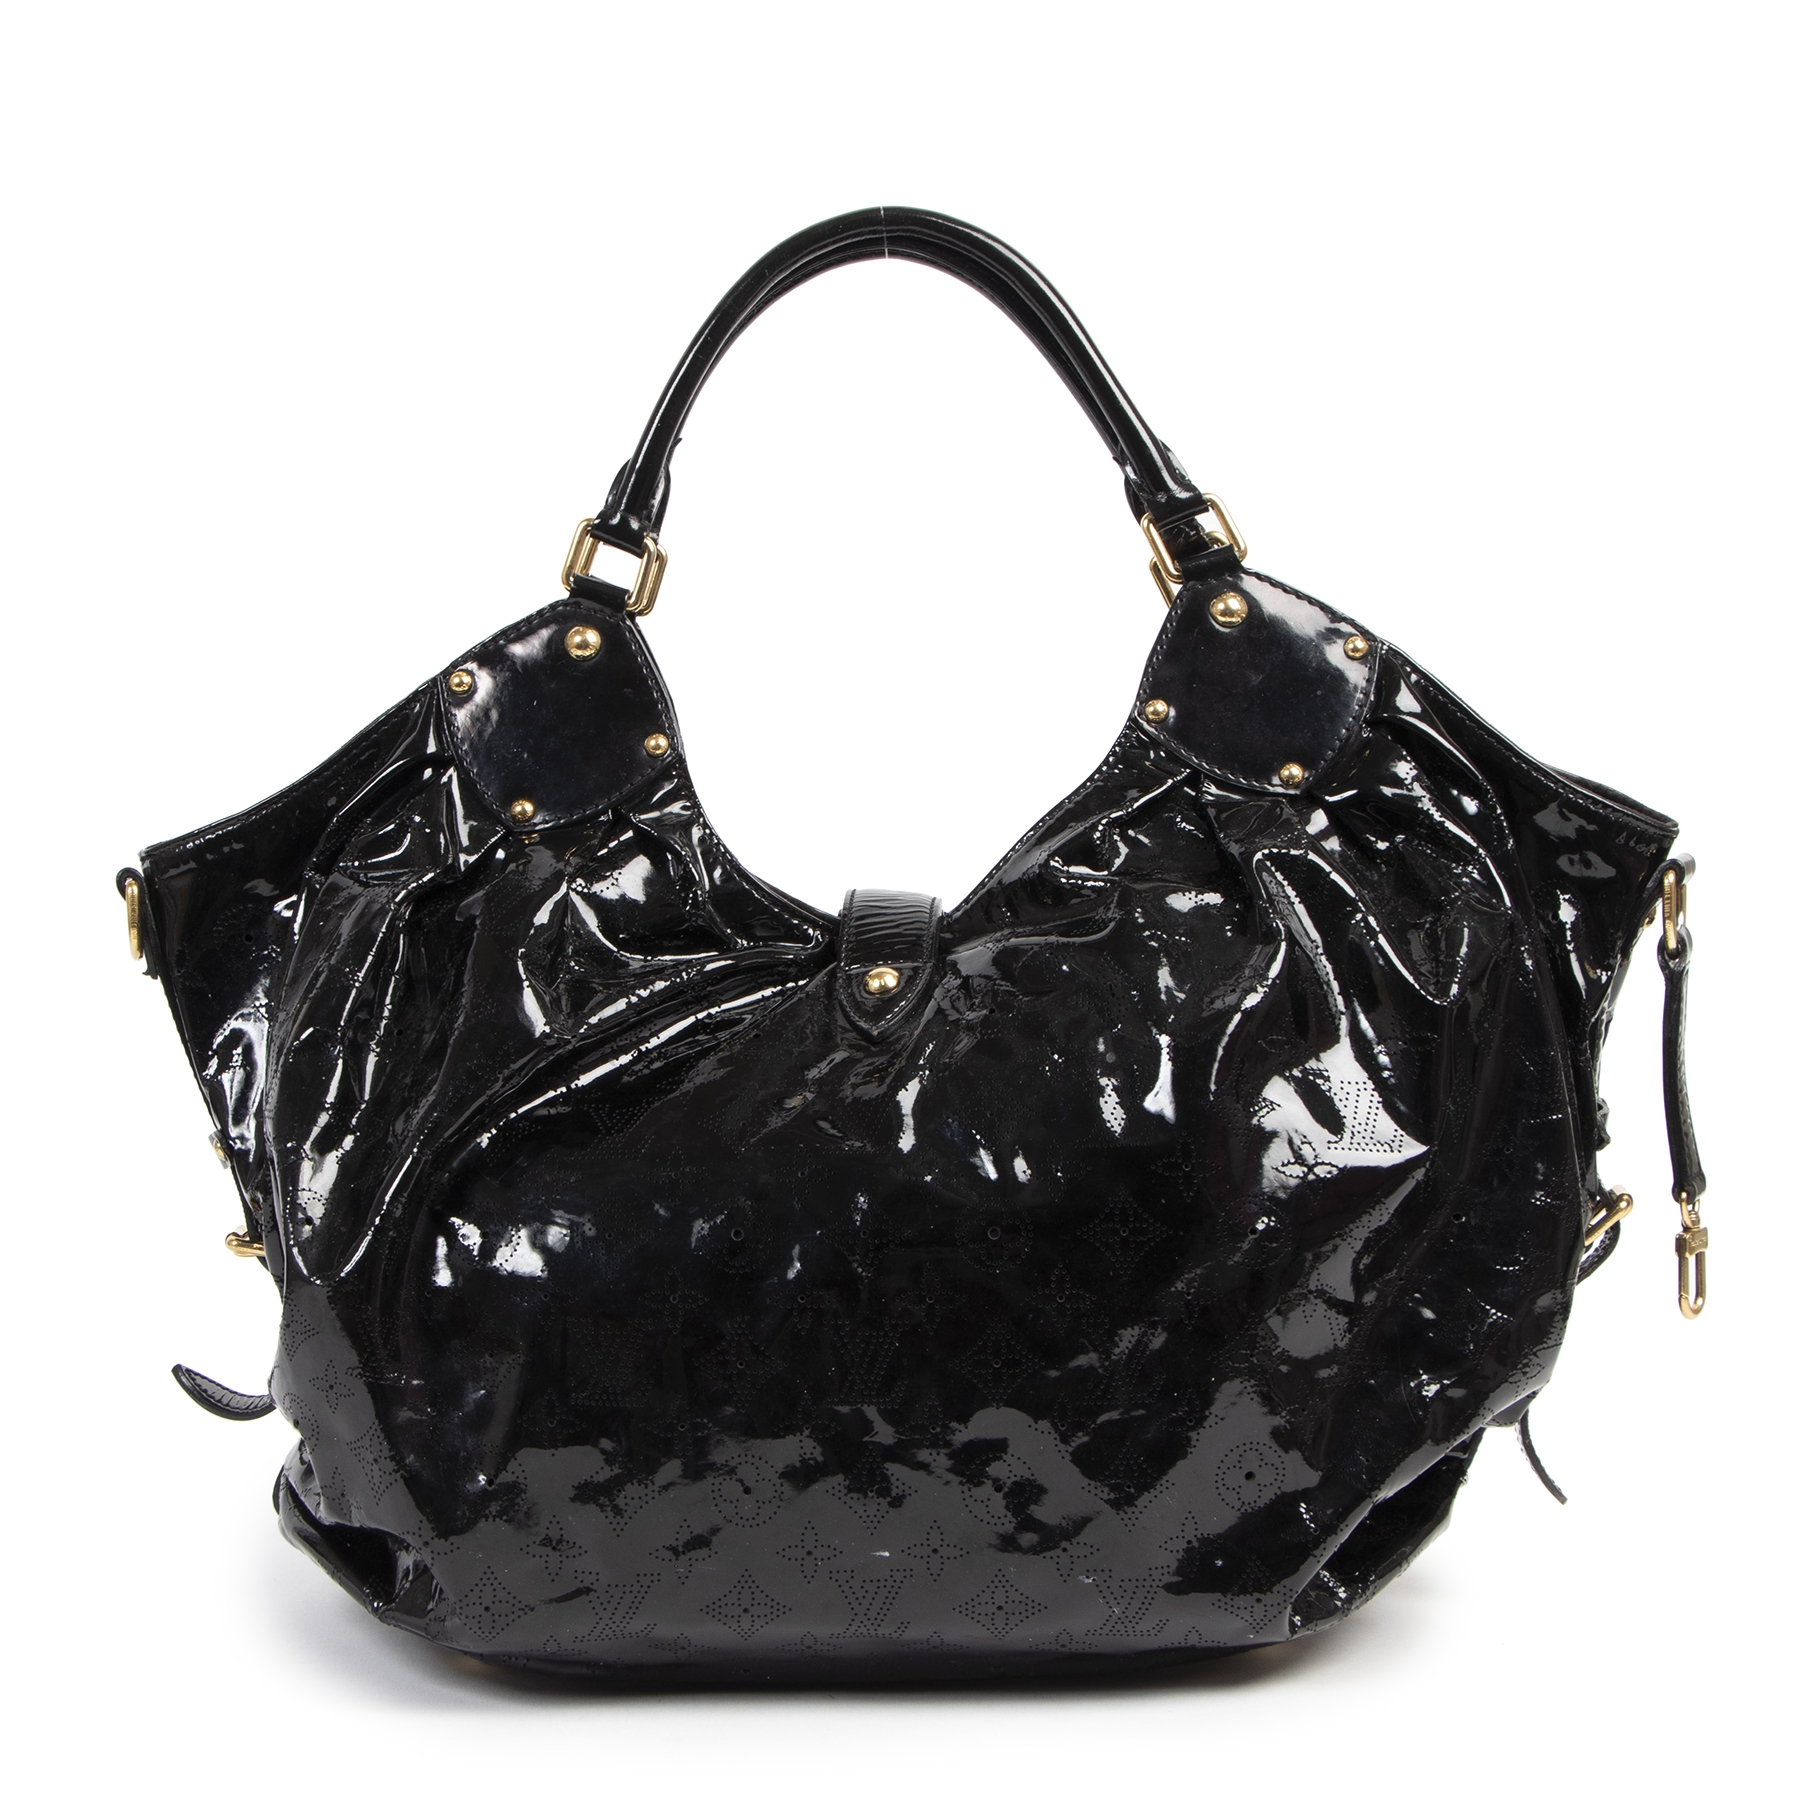 Authentique seconde-main vintage Louis Vuitton Black Mahina Surya XL Hobo Bag achète en ligne webshop